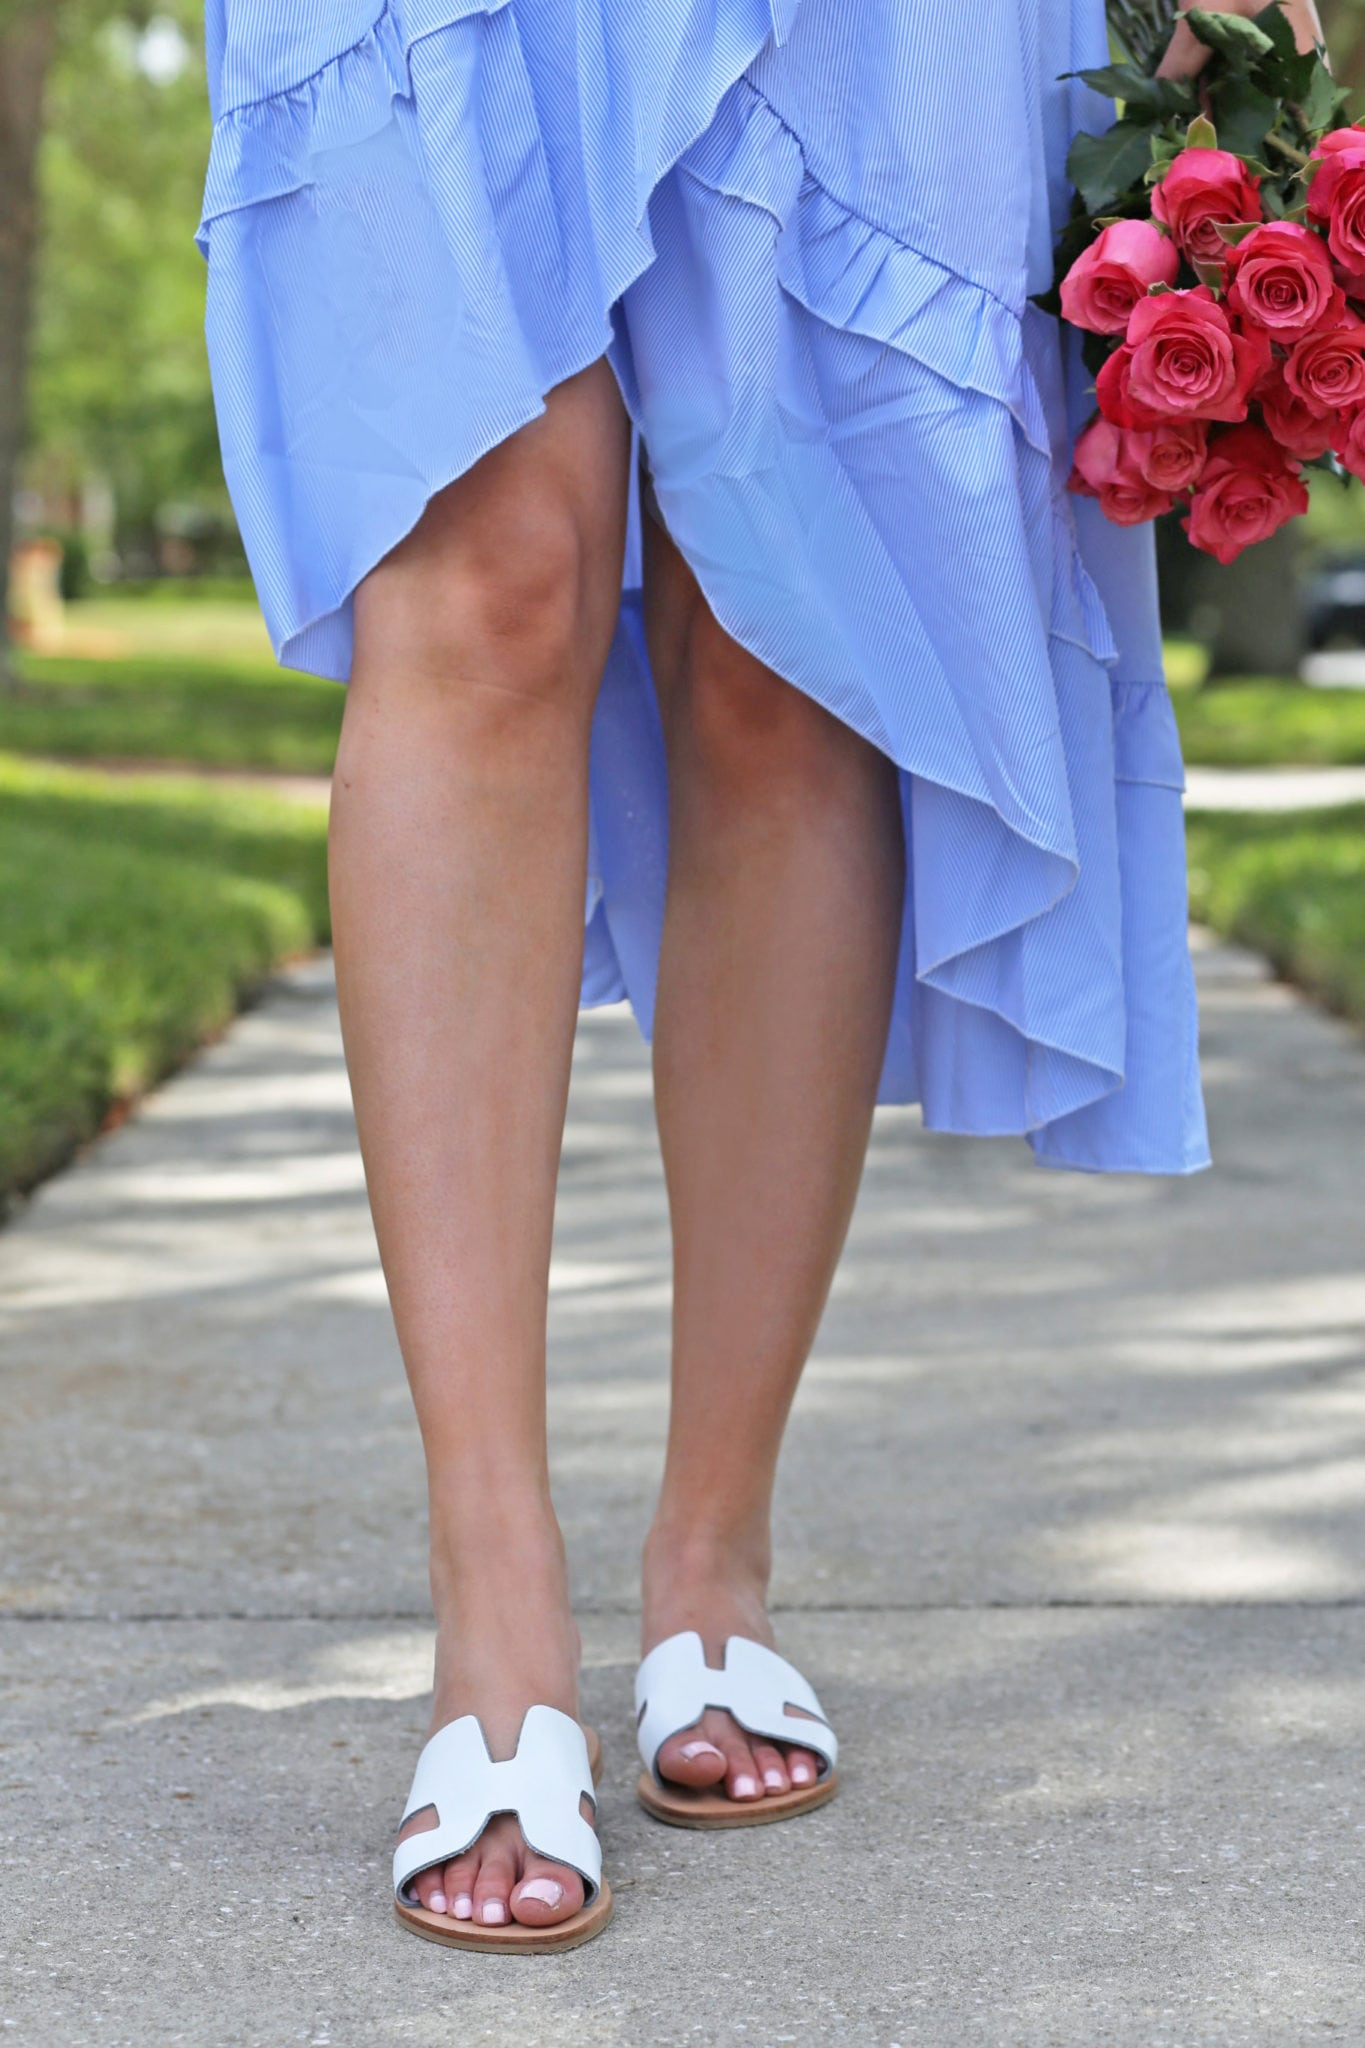 Mash Elle beauty blogger sweet spring dress blue pink roses park spring time white sandals